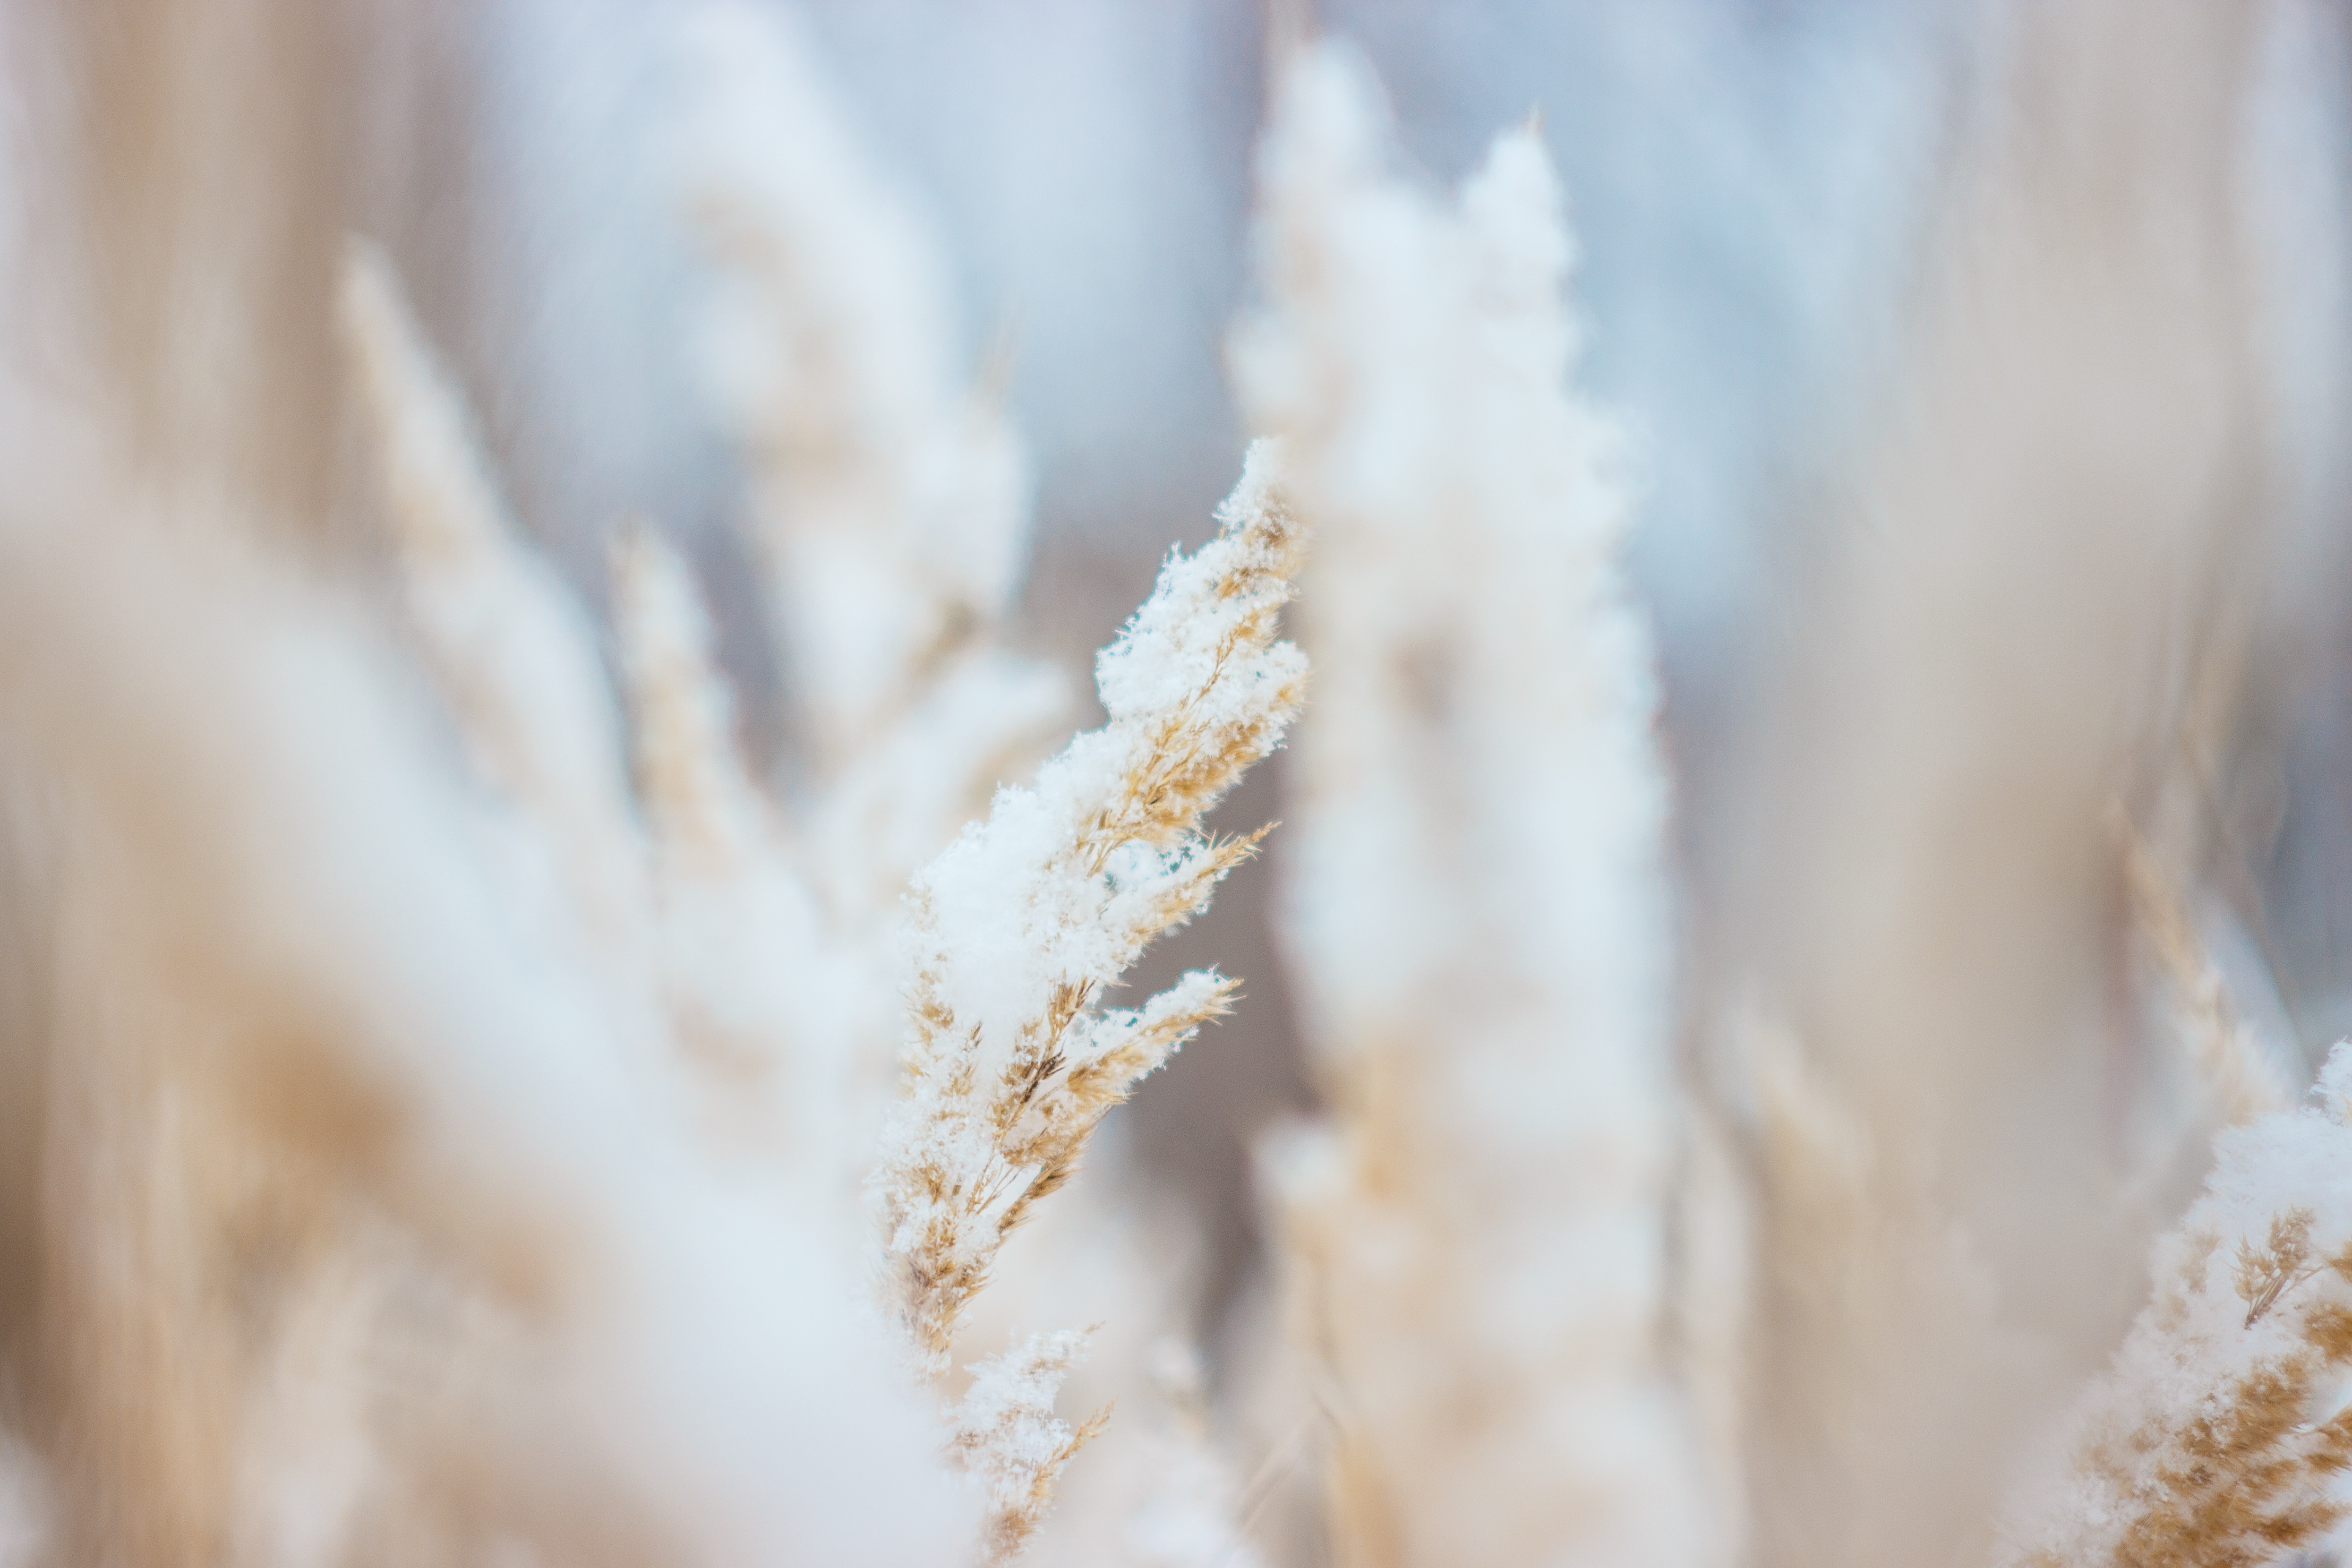 Crops, Plants, Nature, Brown, Blur, HQ Photo